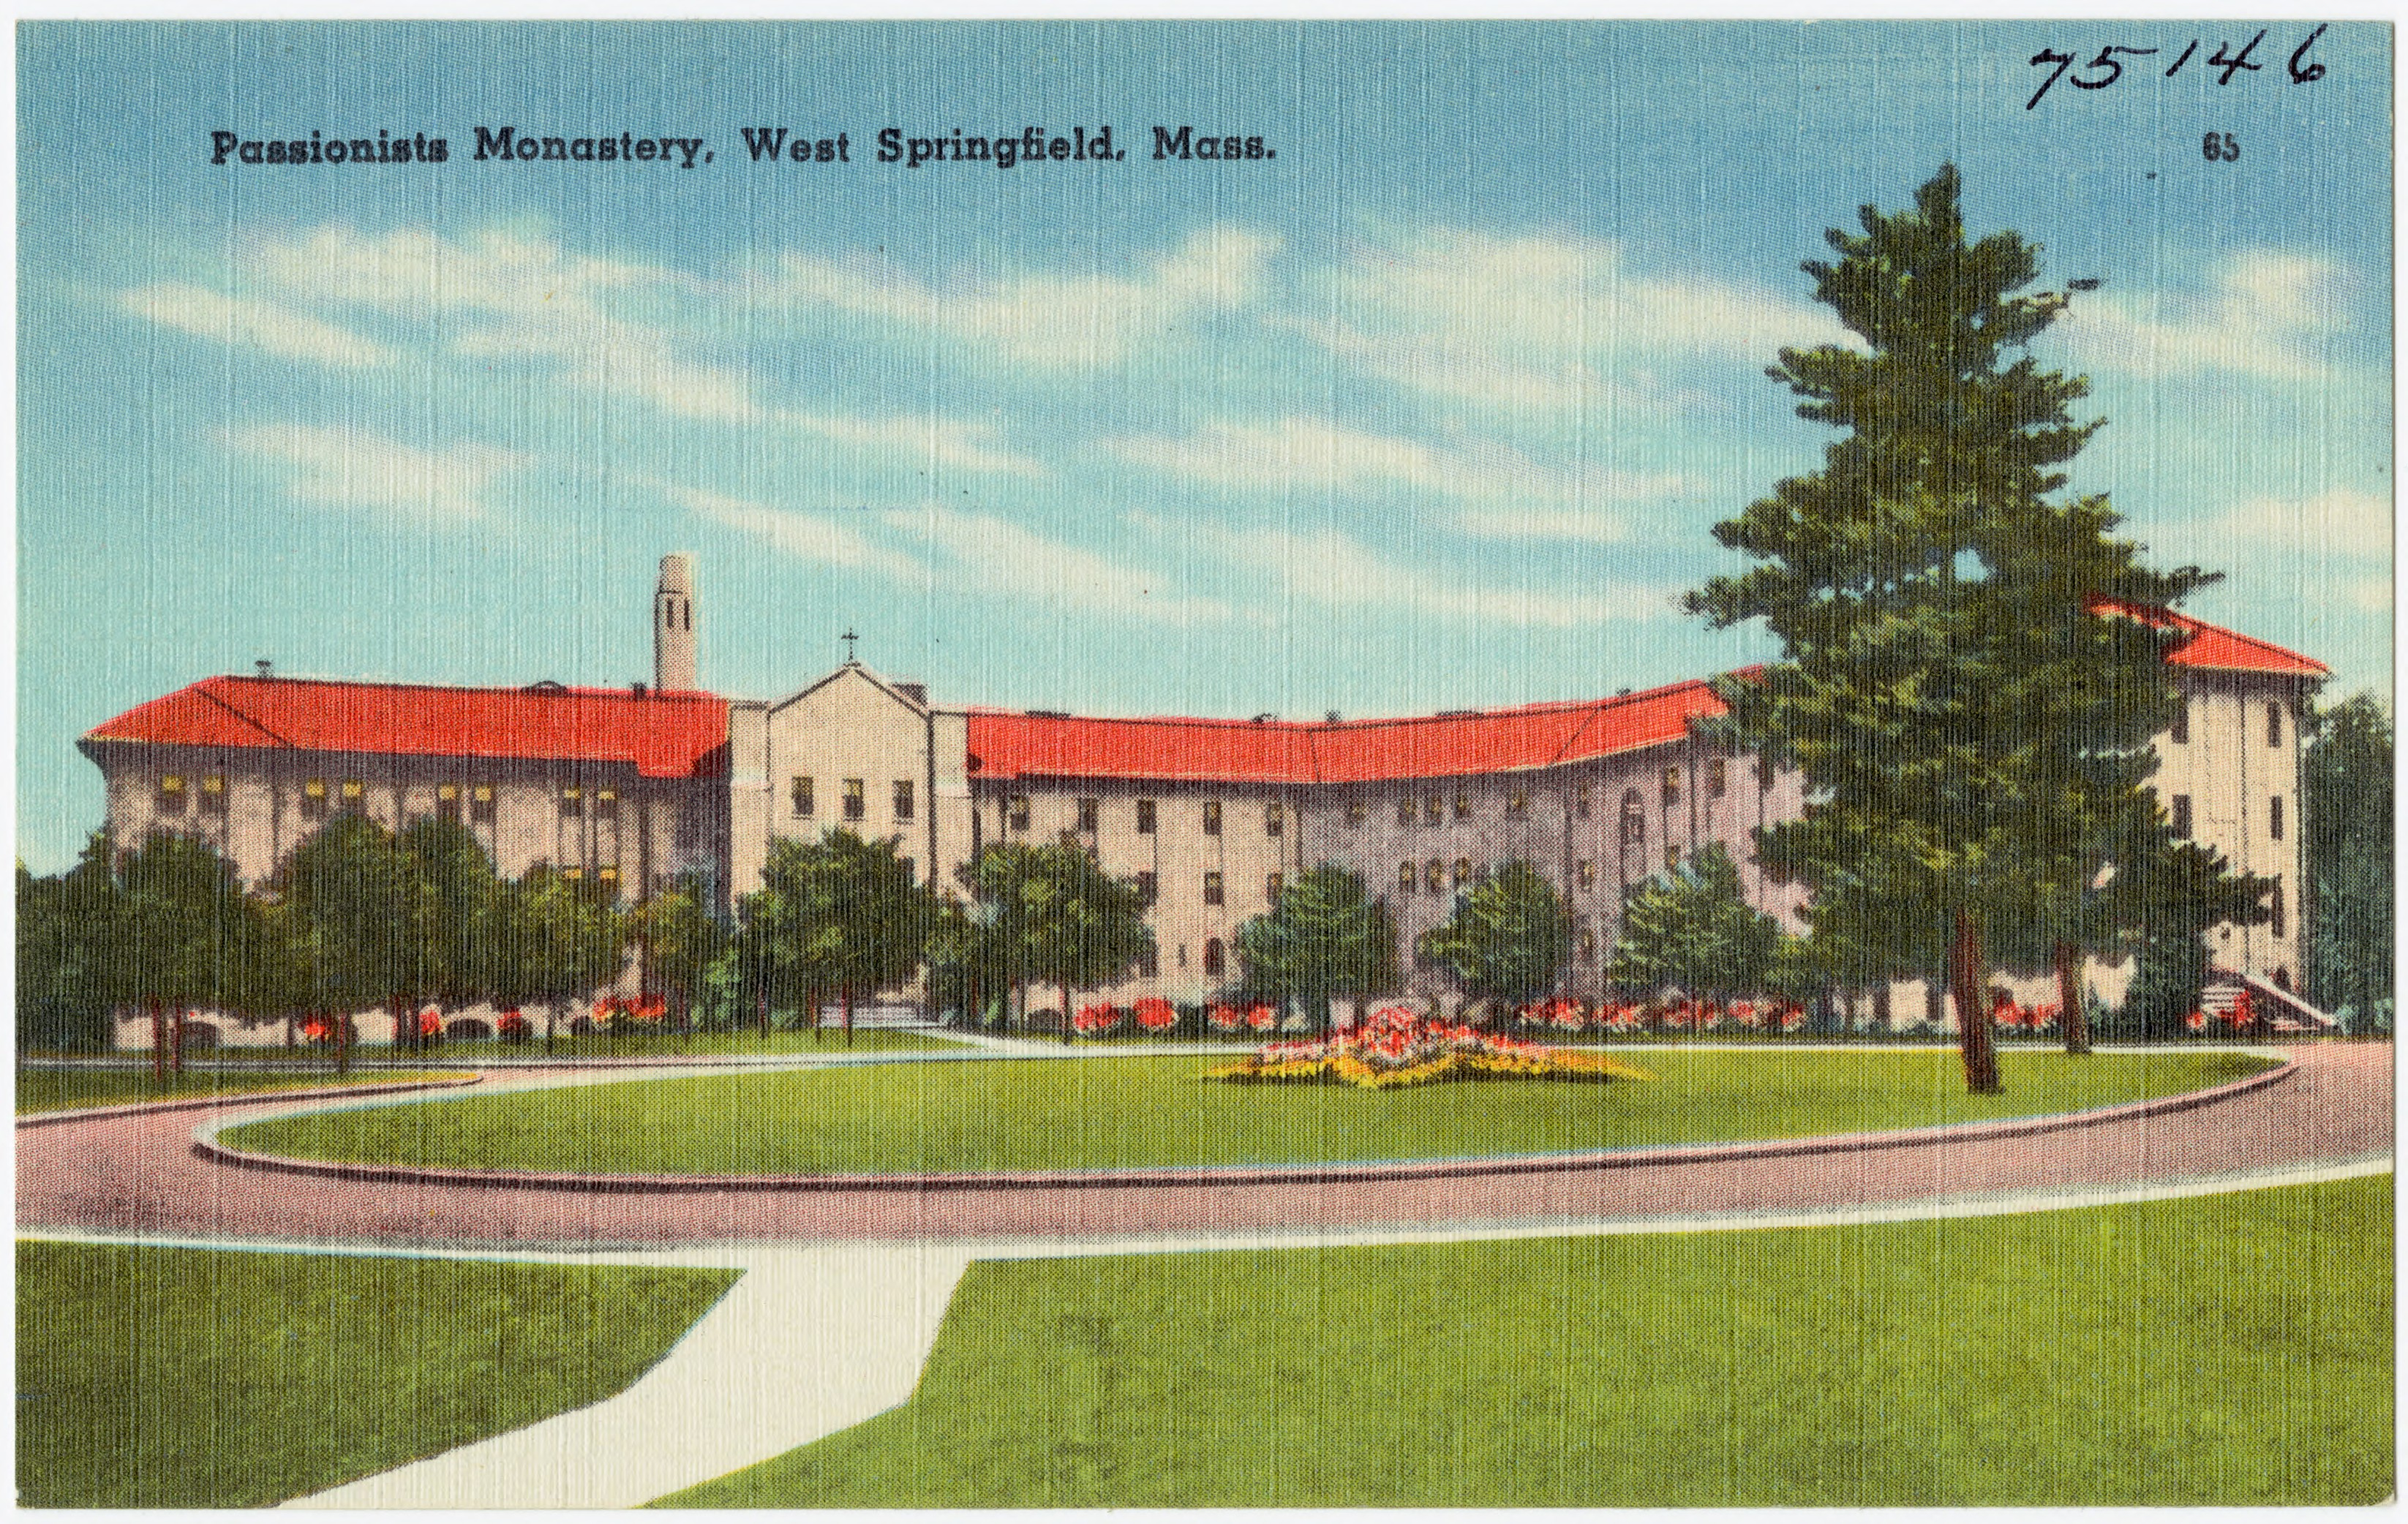 File:Passionists Monastery, West Springfield, Mass (75146